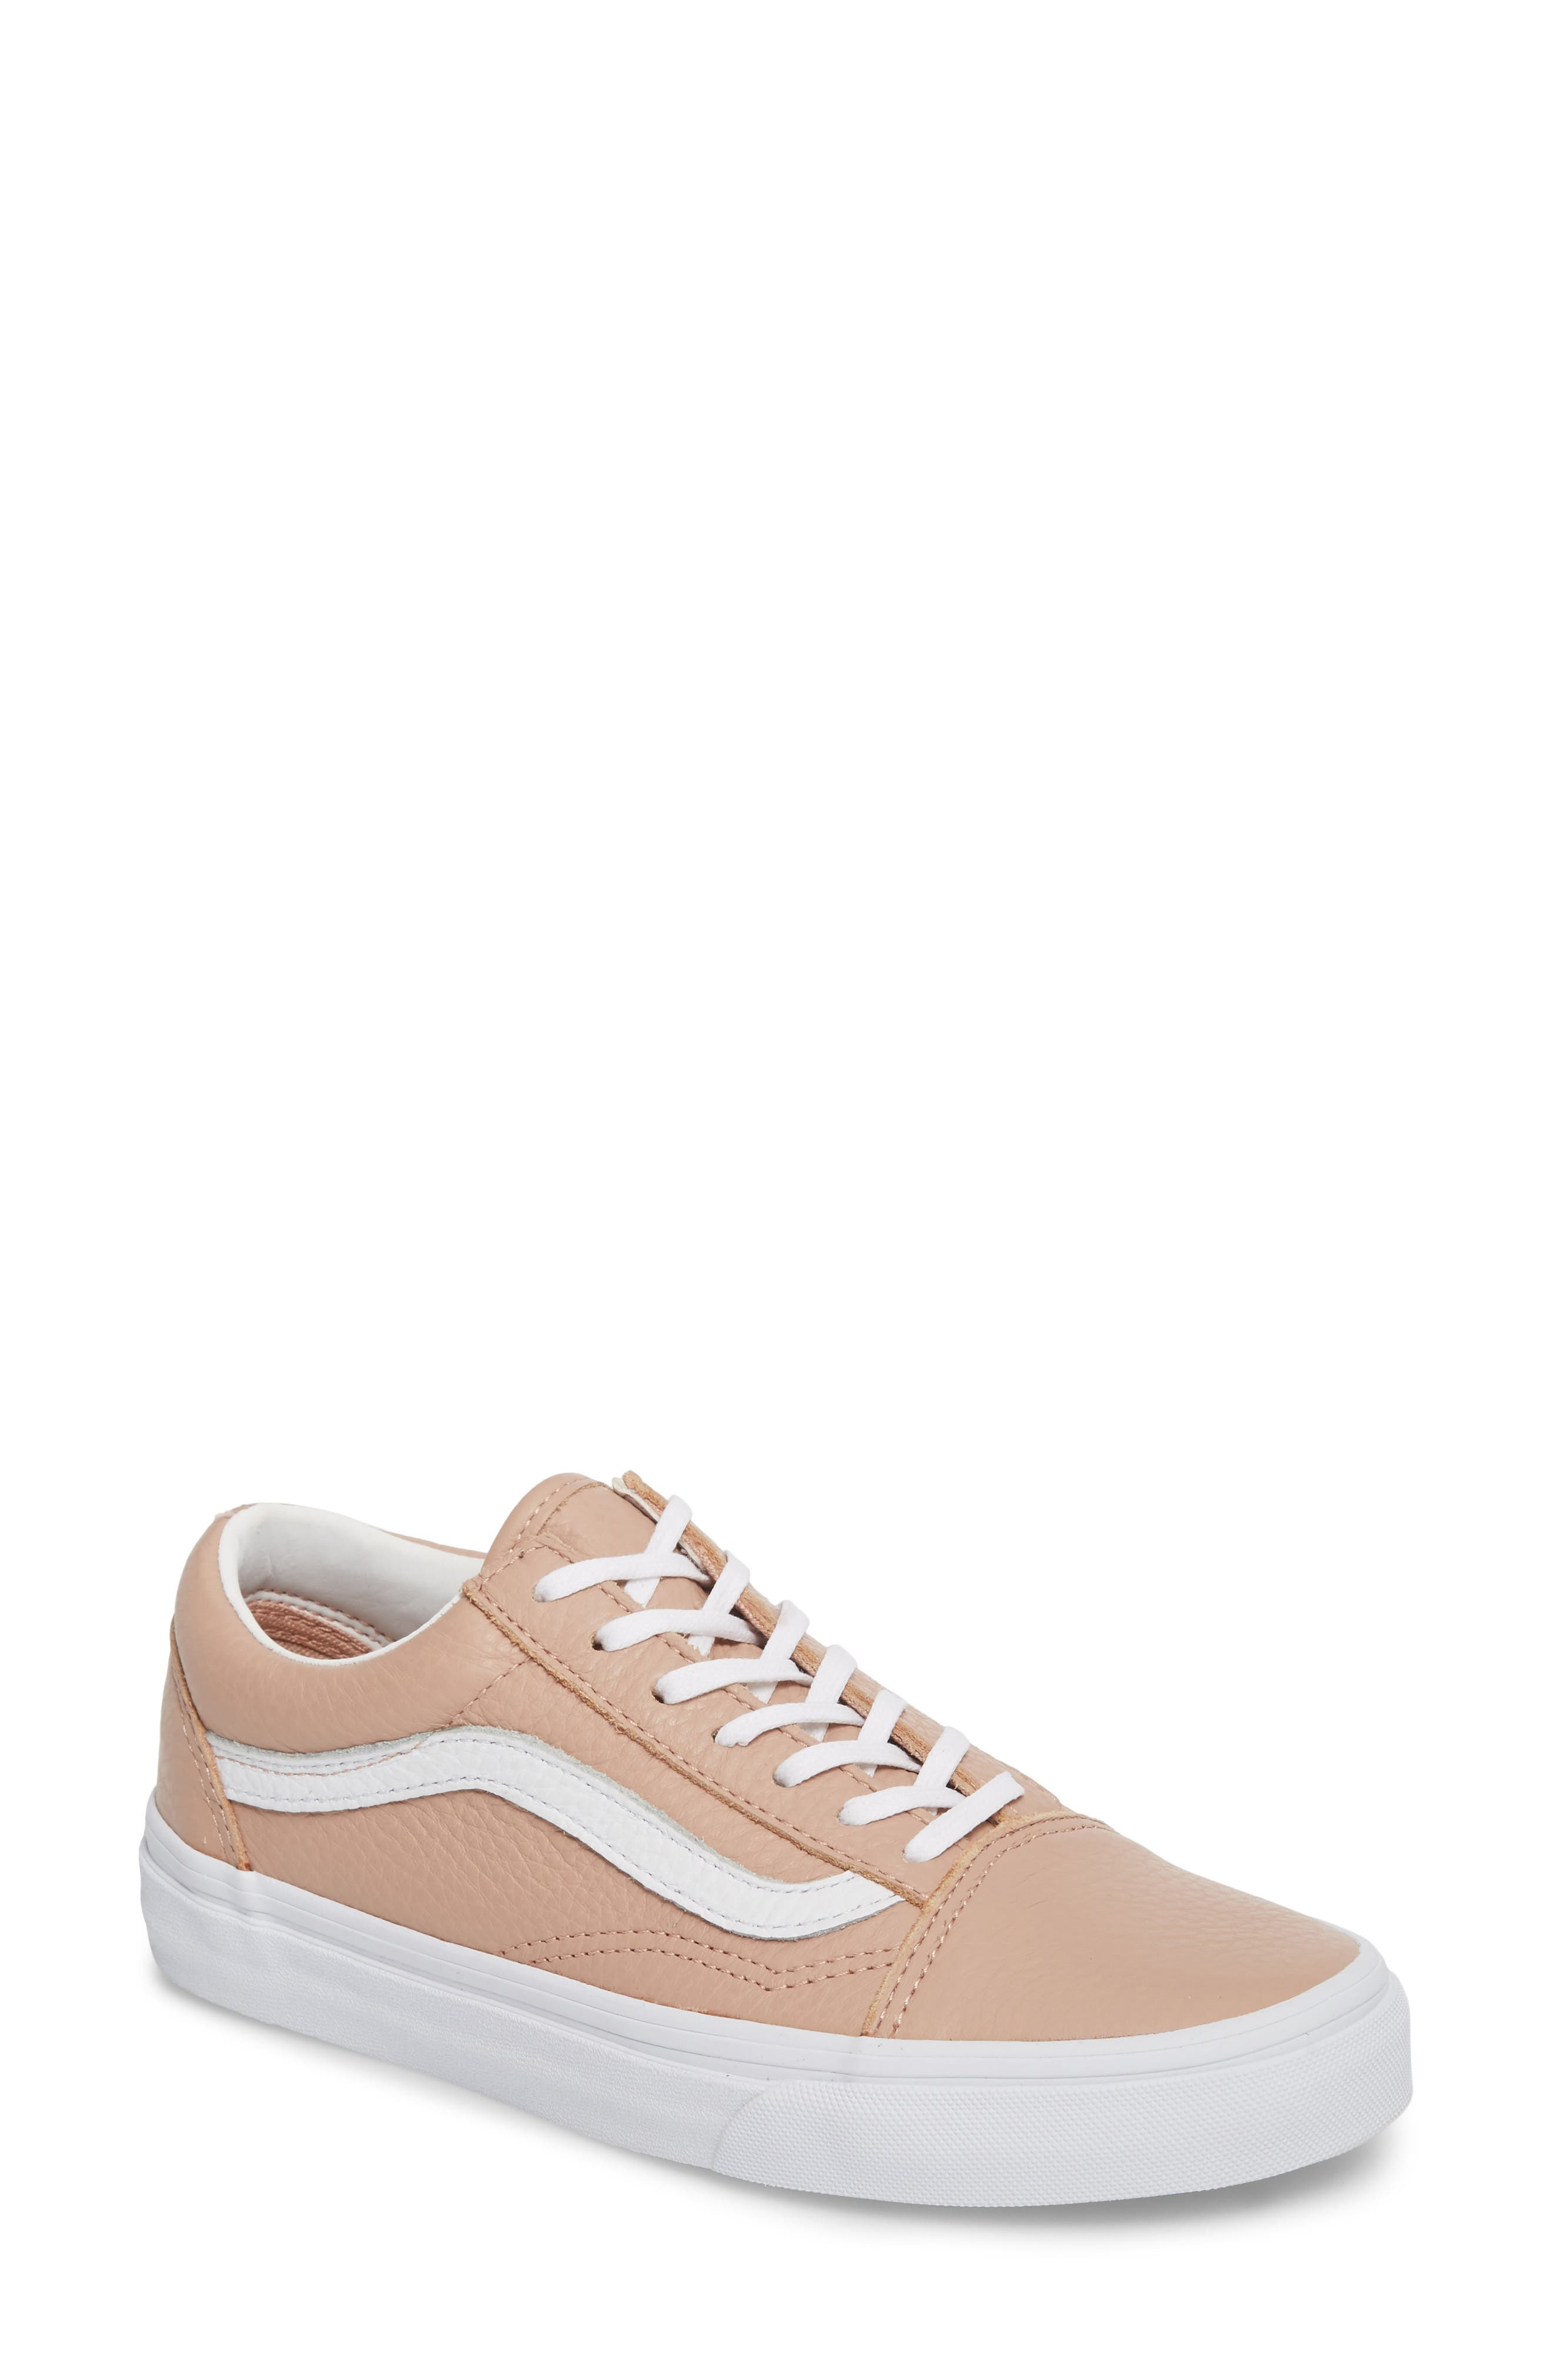 Old Skool DX Sneaker,                             Main thumbnail 1, color,                             Mahogany Rose/ True White